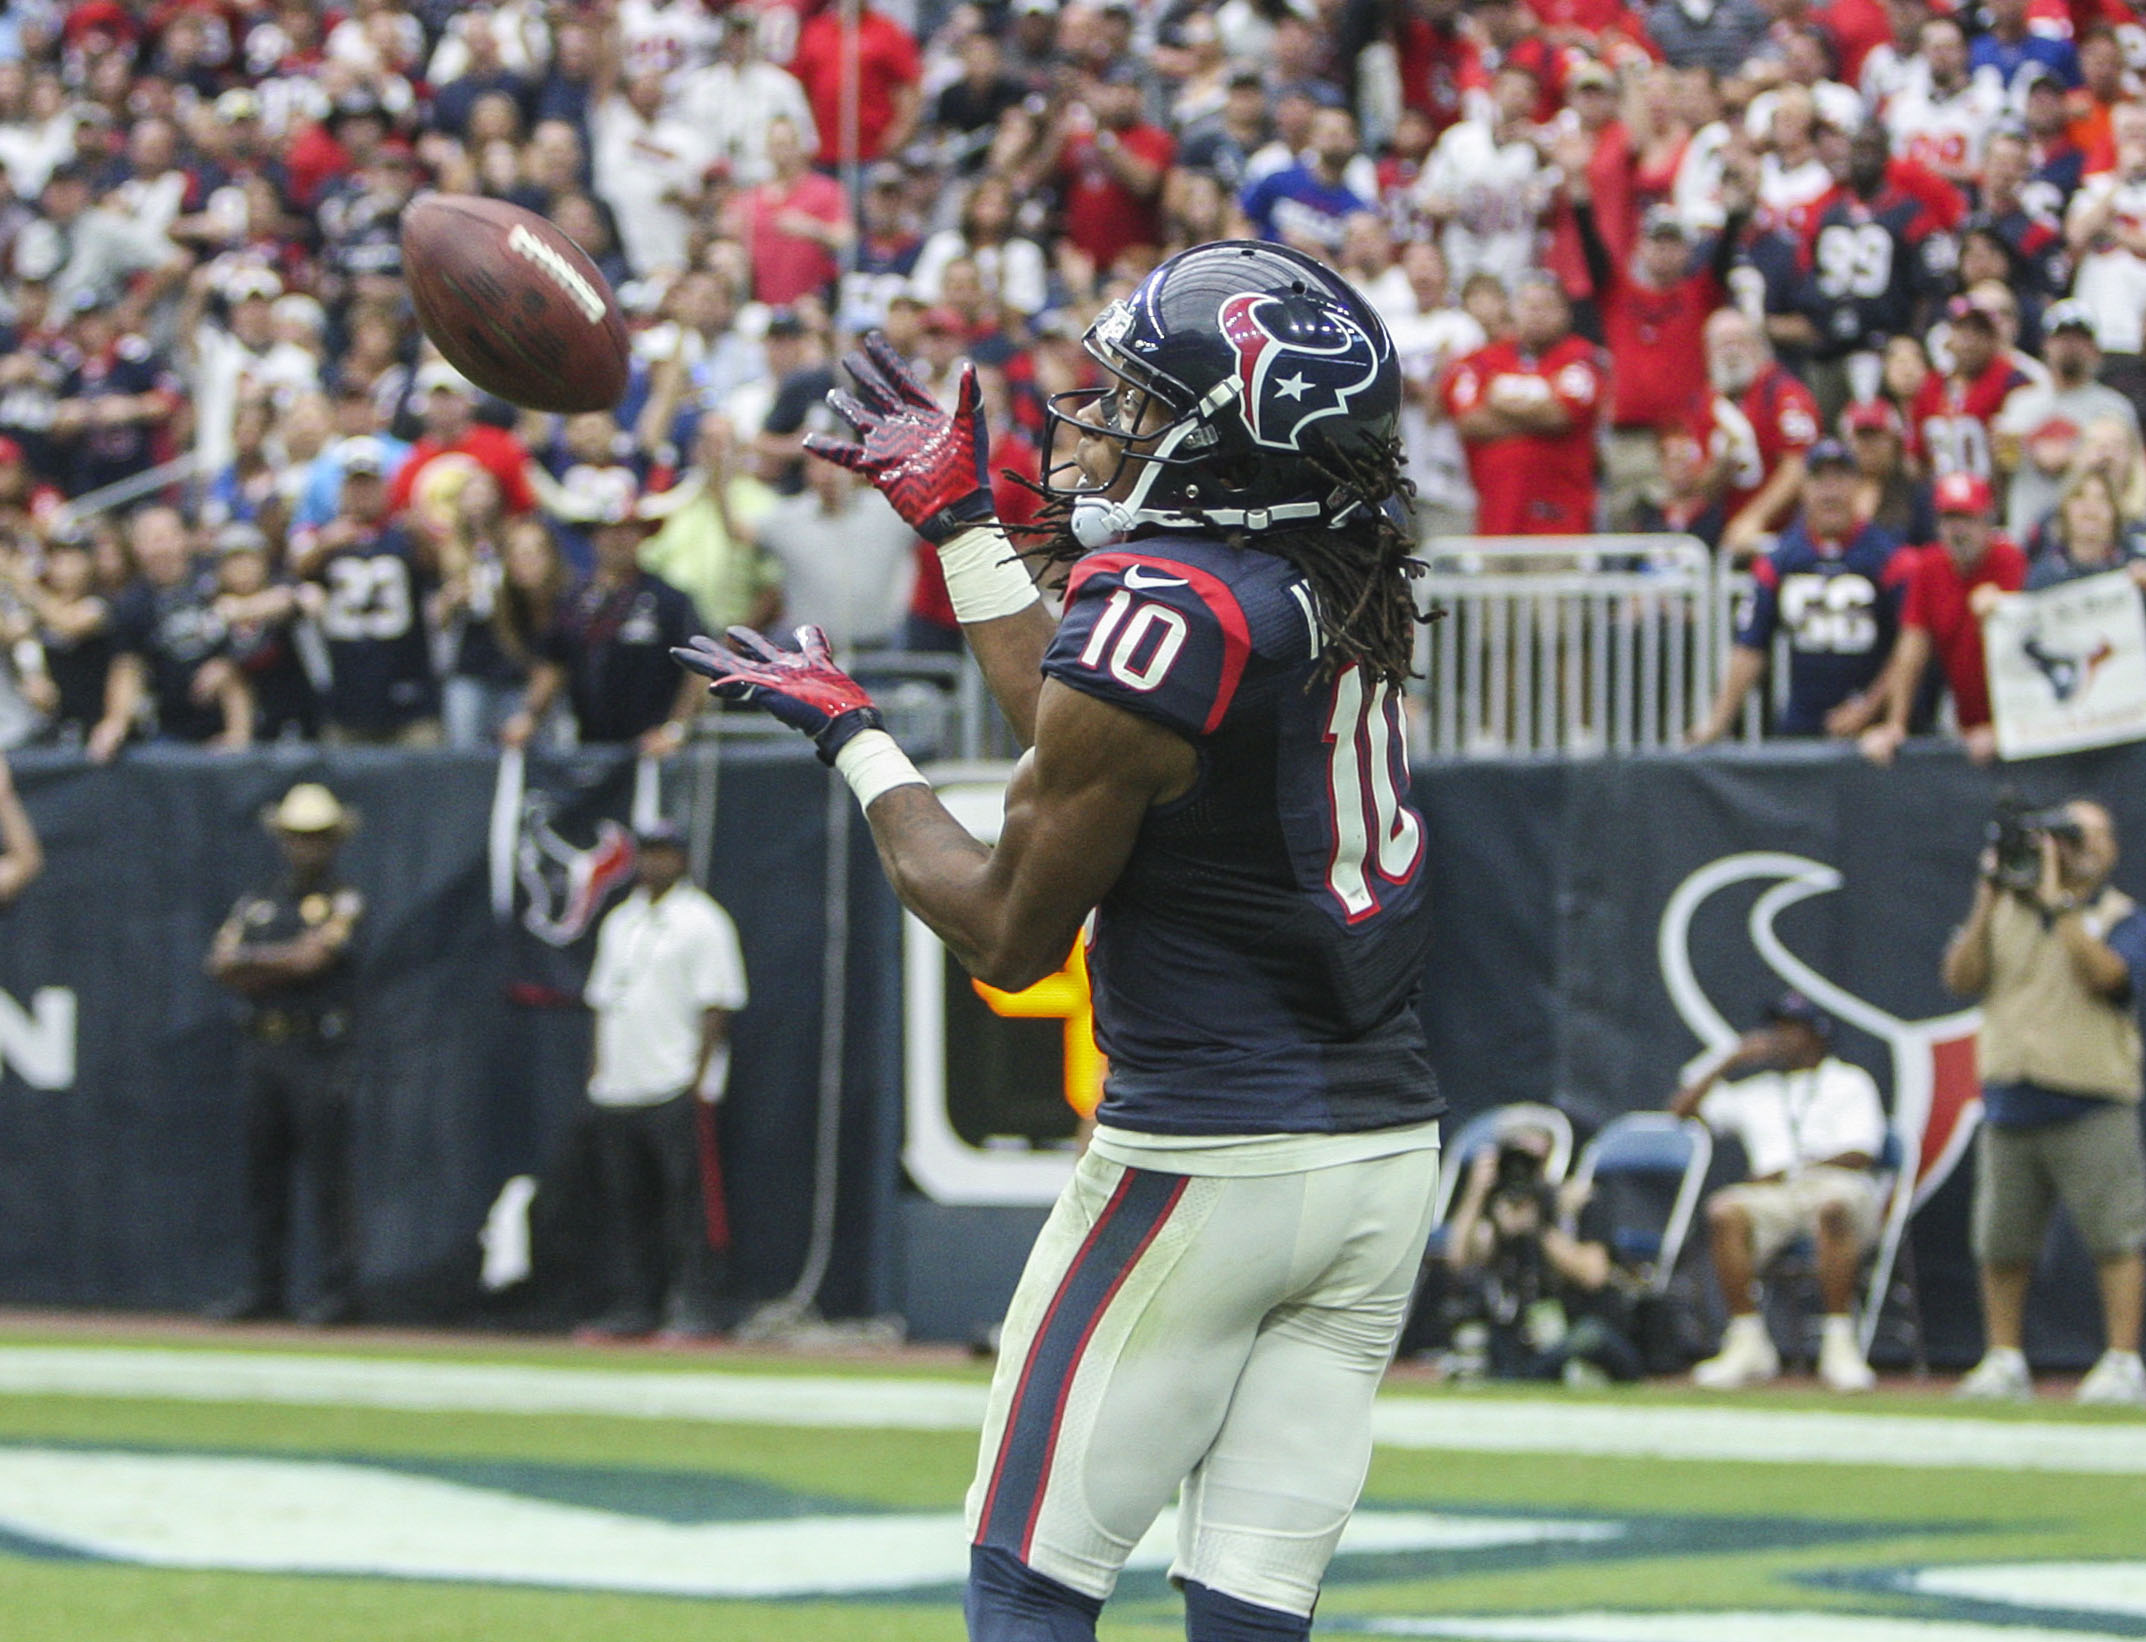 NFL: Buffalo Bills at Houston Texans